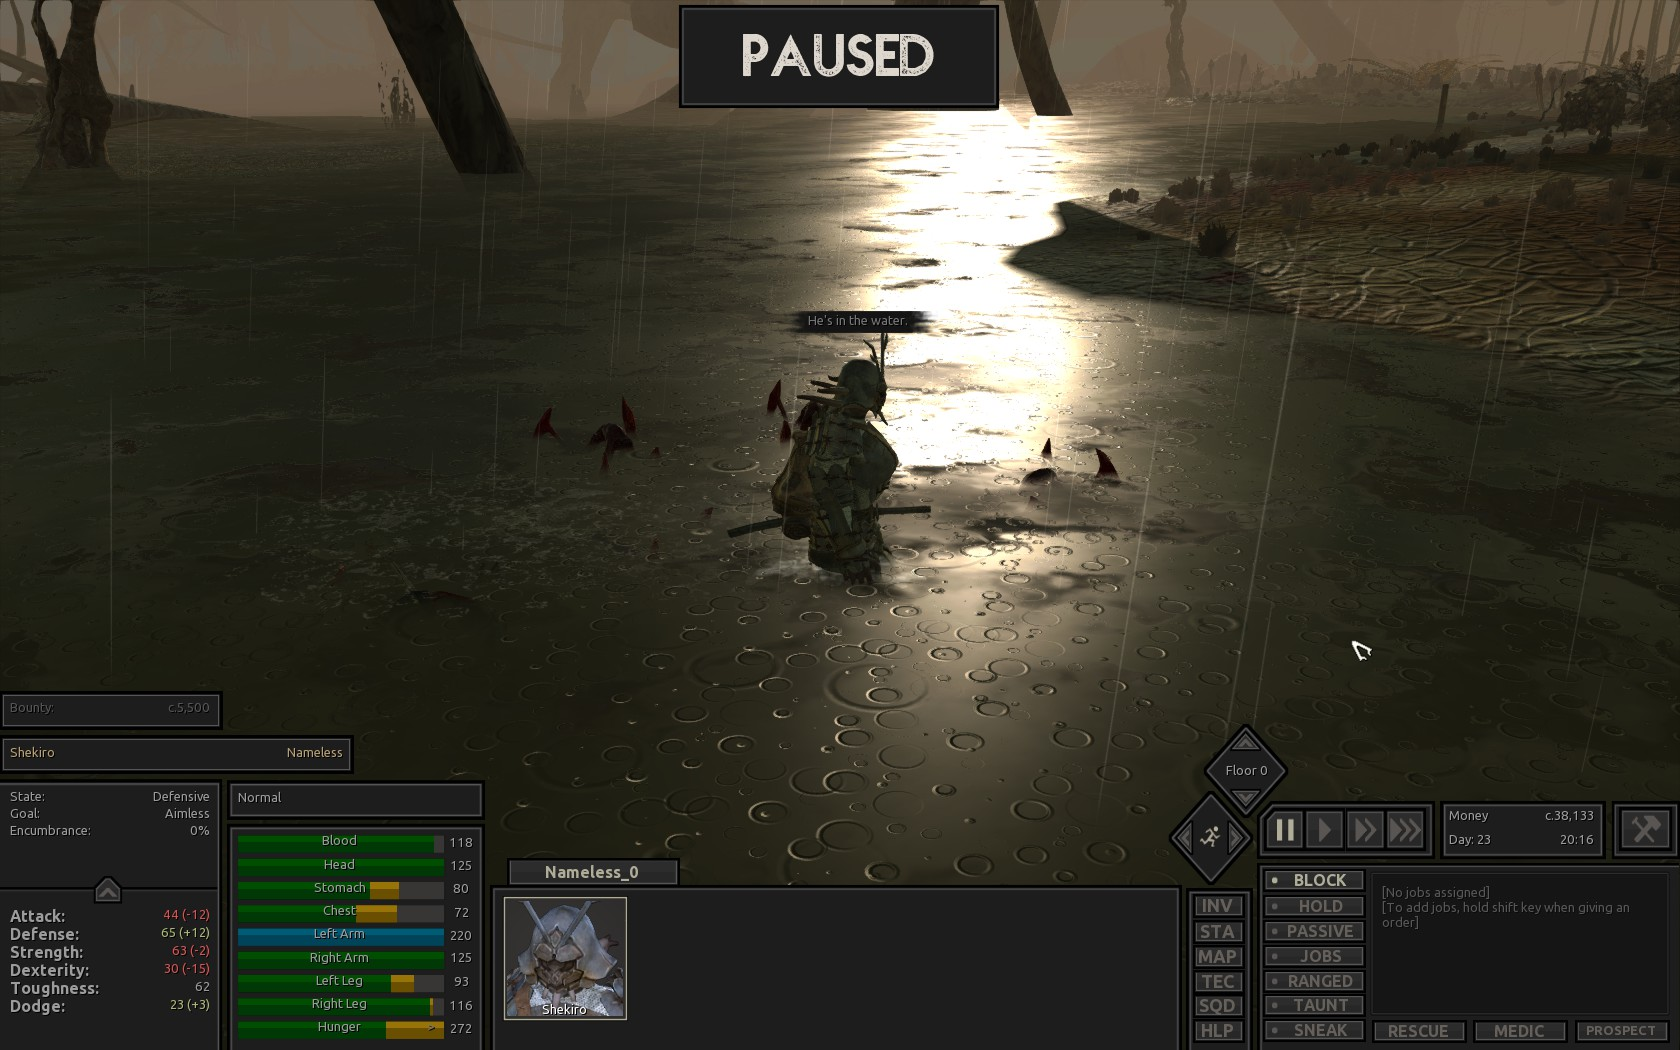 Been playing a game called Kenshi, wanted to share my